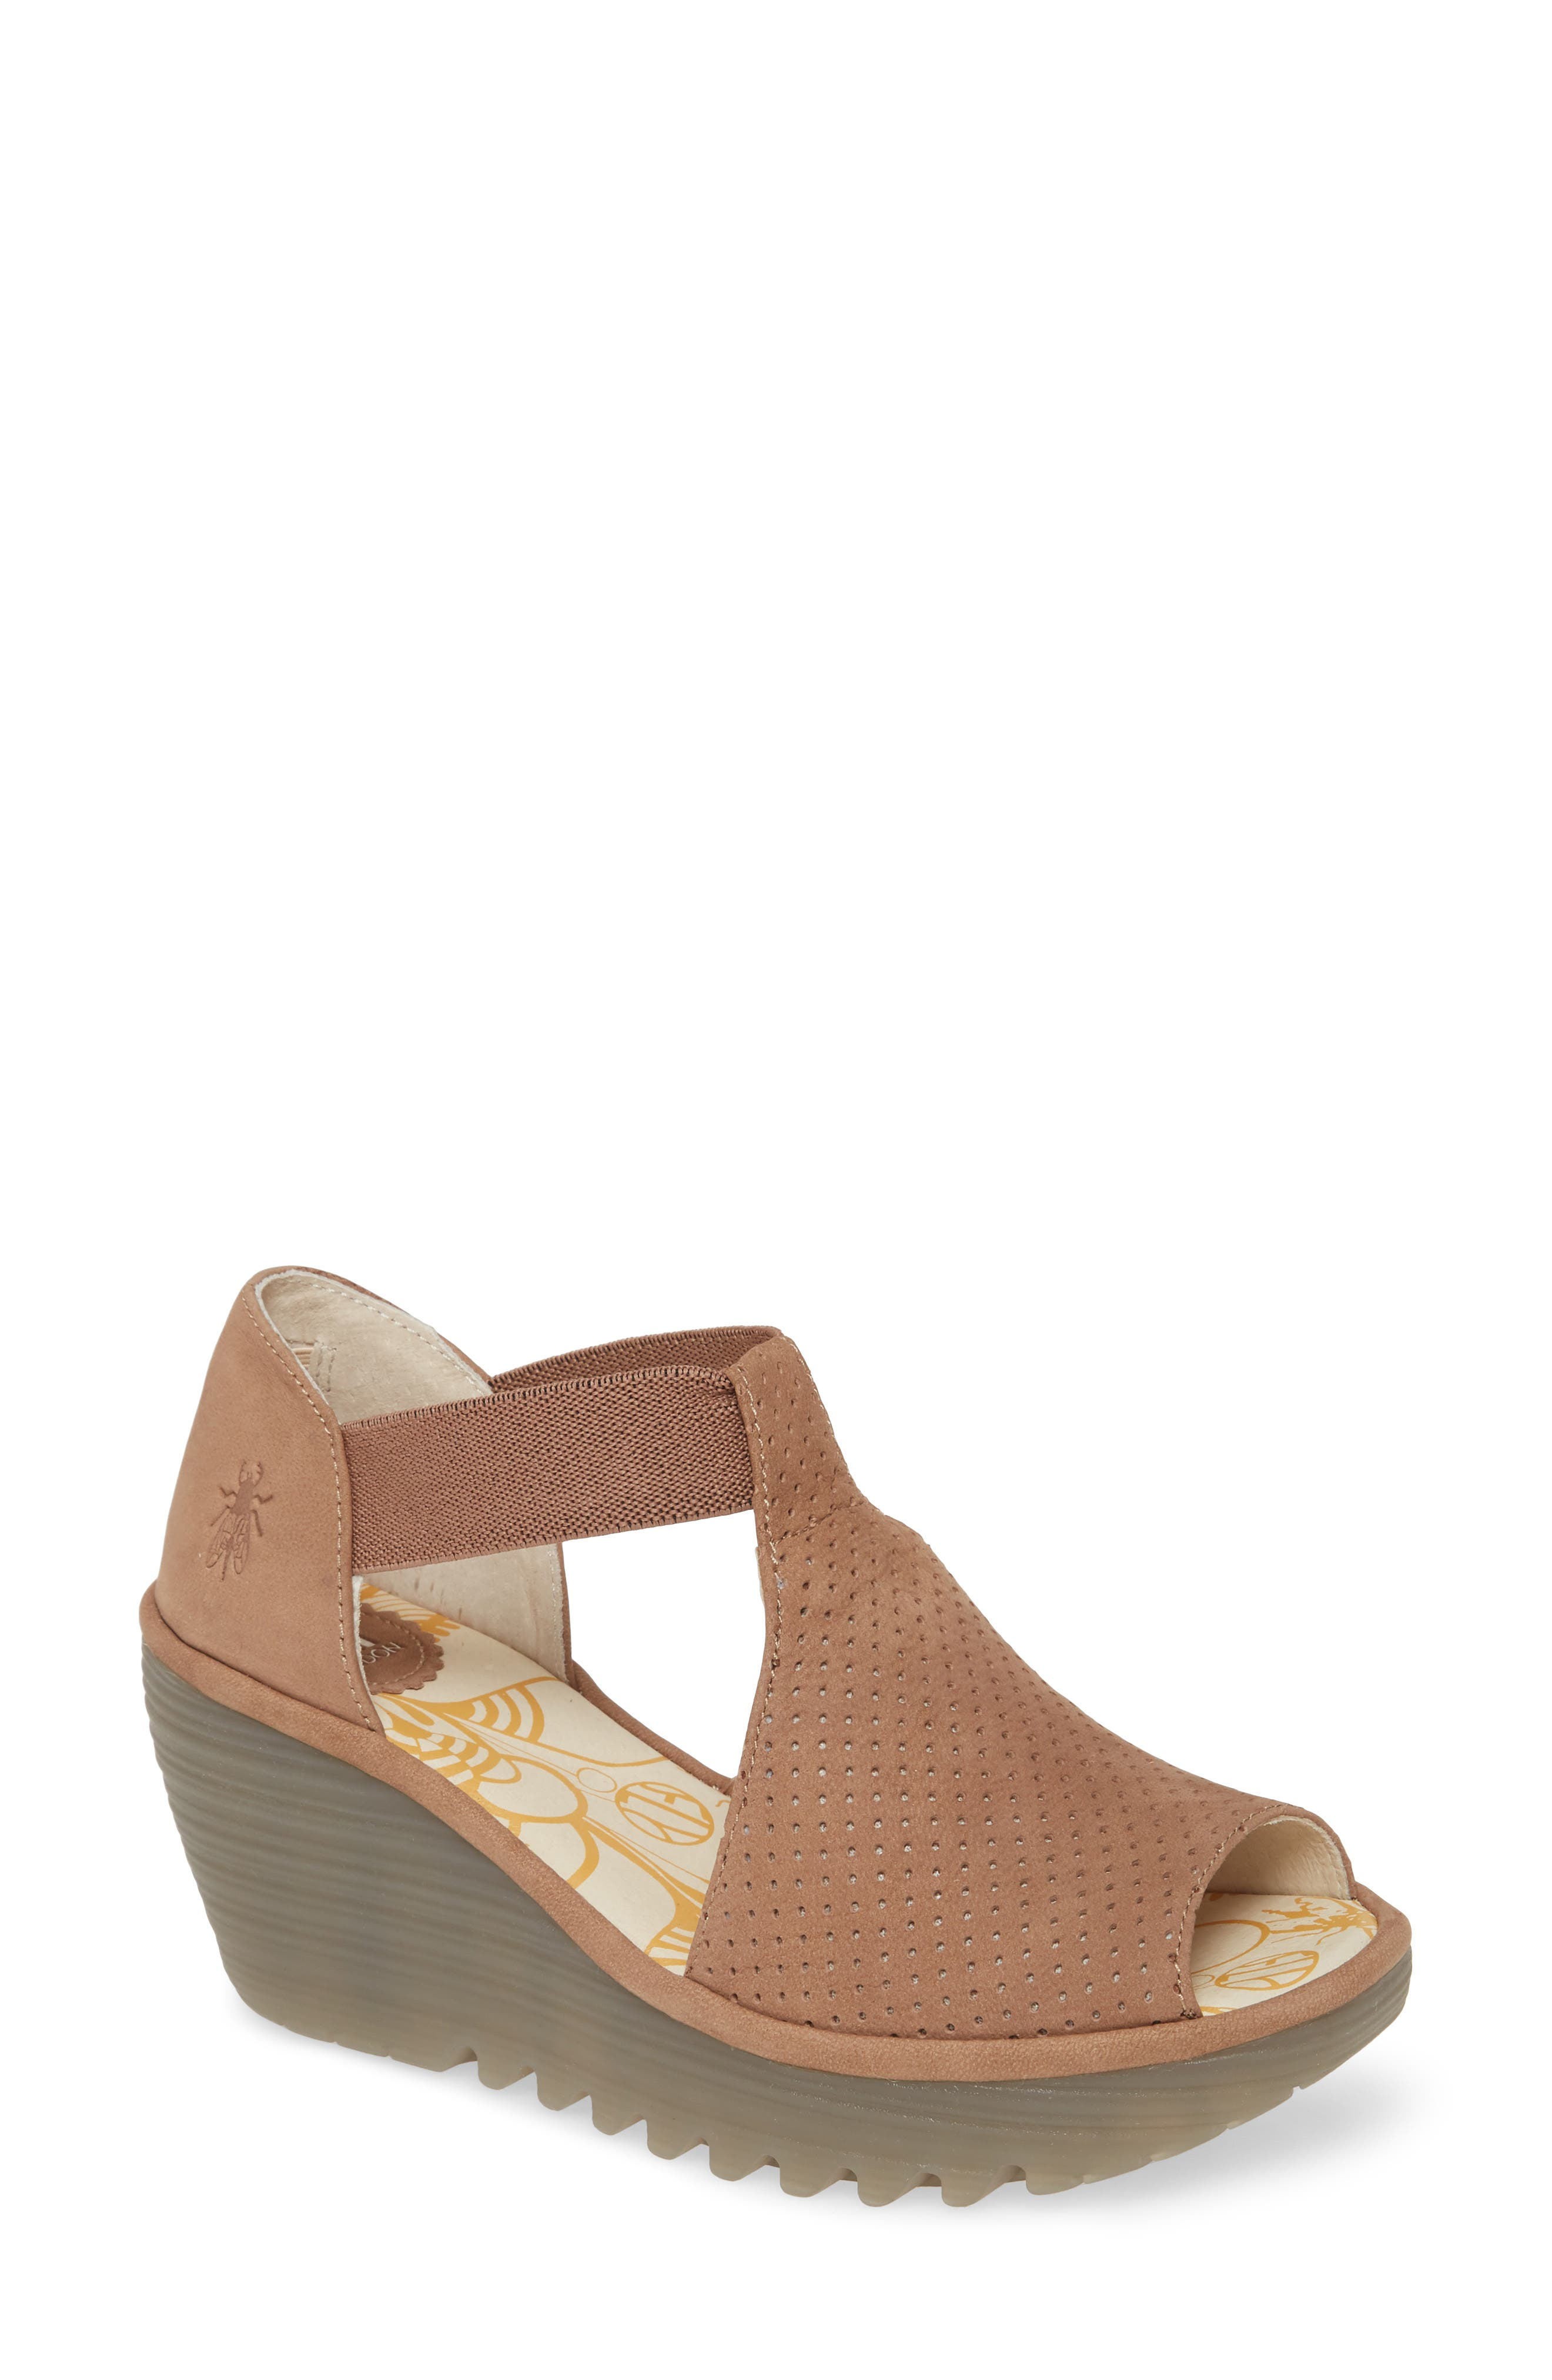 A signature textured wedge grounds a breezy peep-toe sandal that delivers the perfect combination of chic style and everyday comfort. Style Name: Fly London Yemo Sandal (Women). Style Number: 5960925 1. Available in stores.